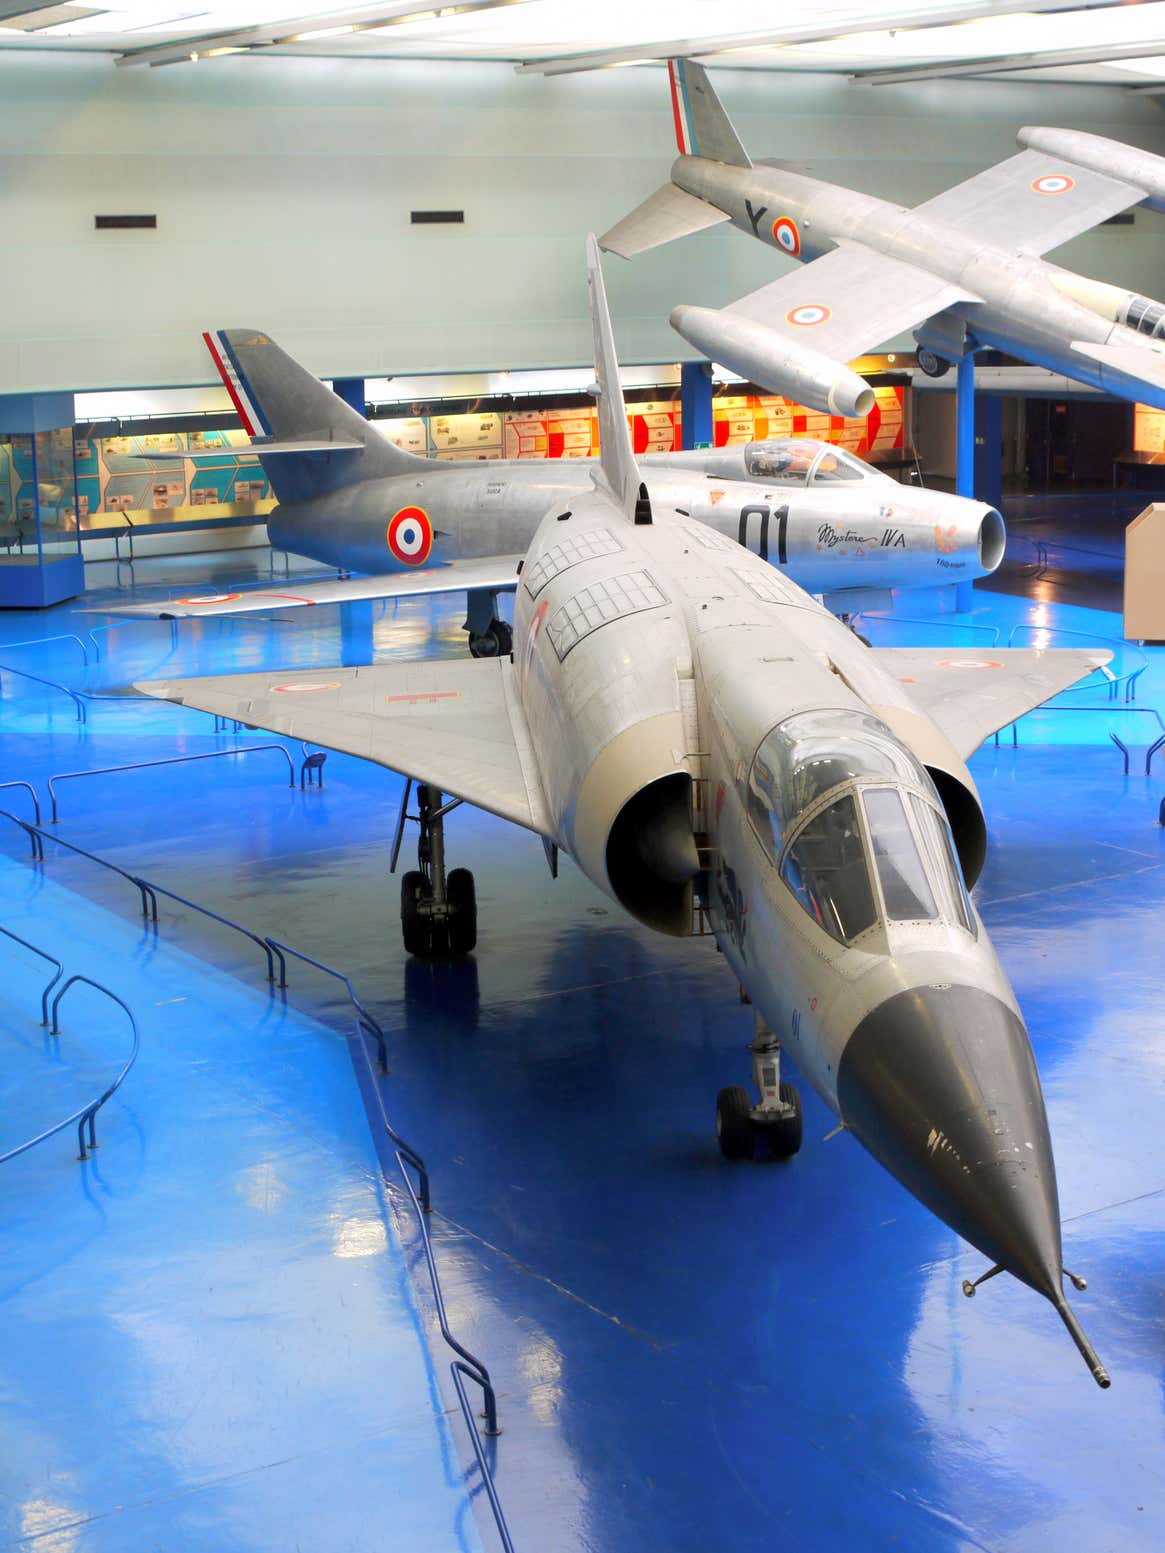 Mirage IIIV Prototype V 01 on display